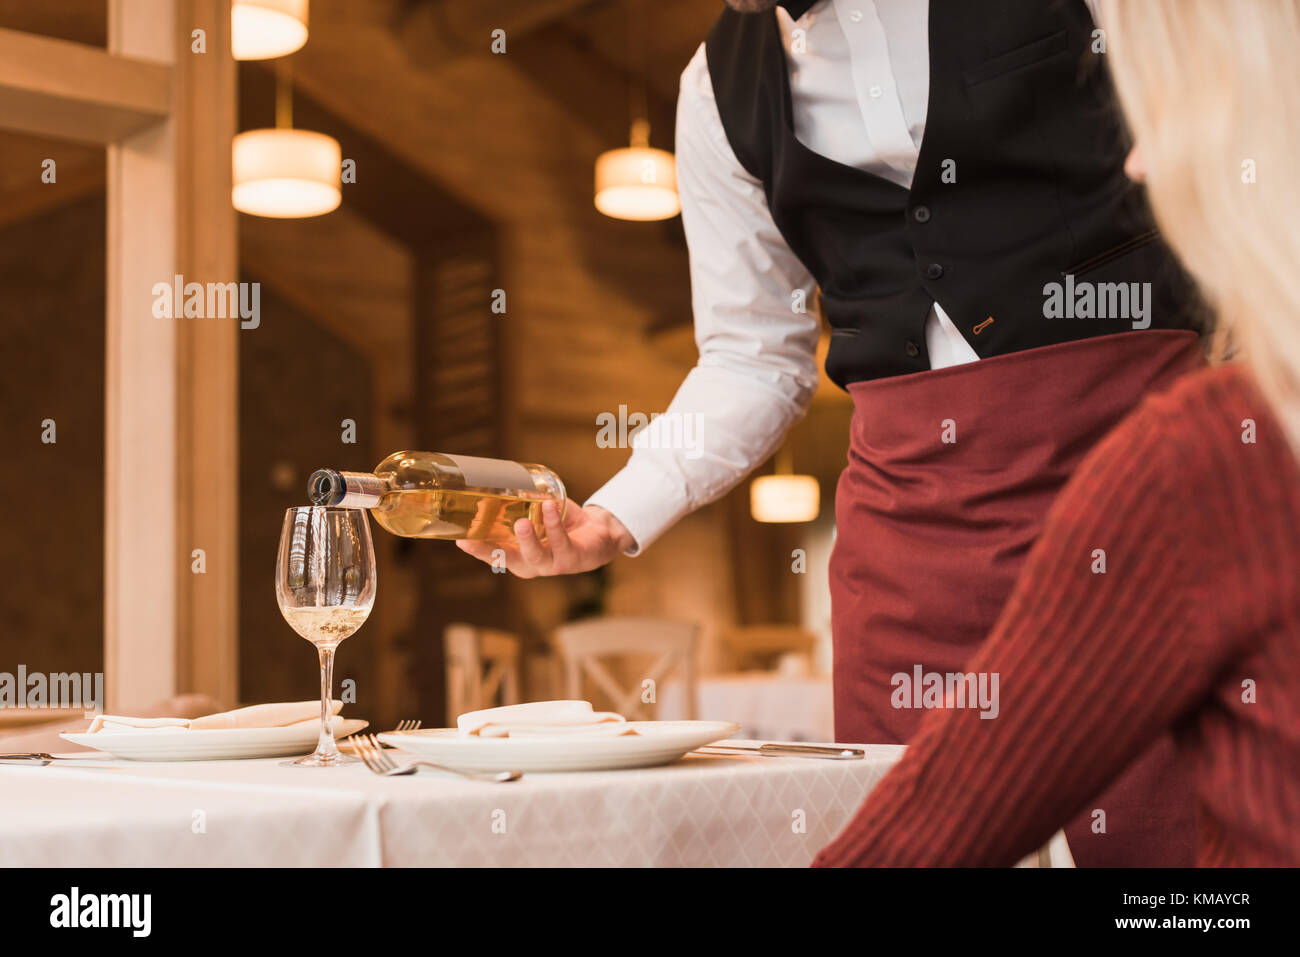 Waiter pouring wine into glass - Stock Image